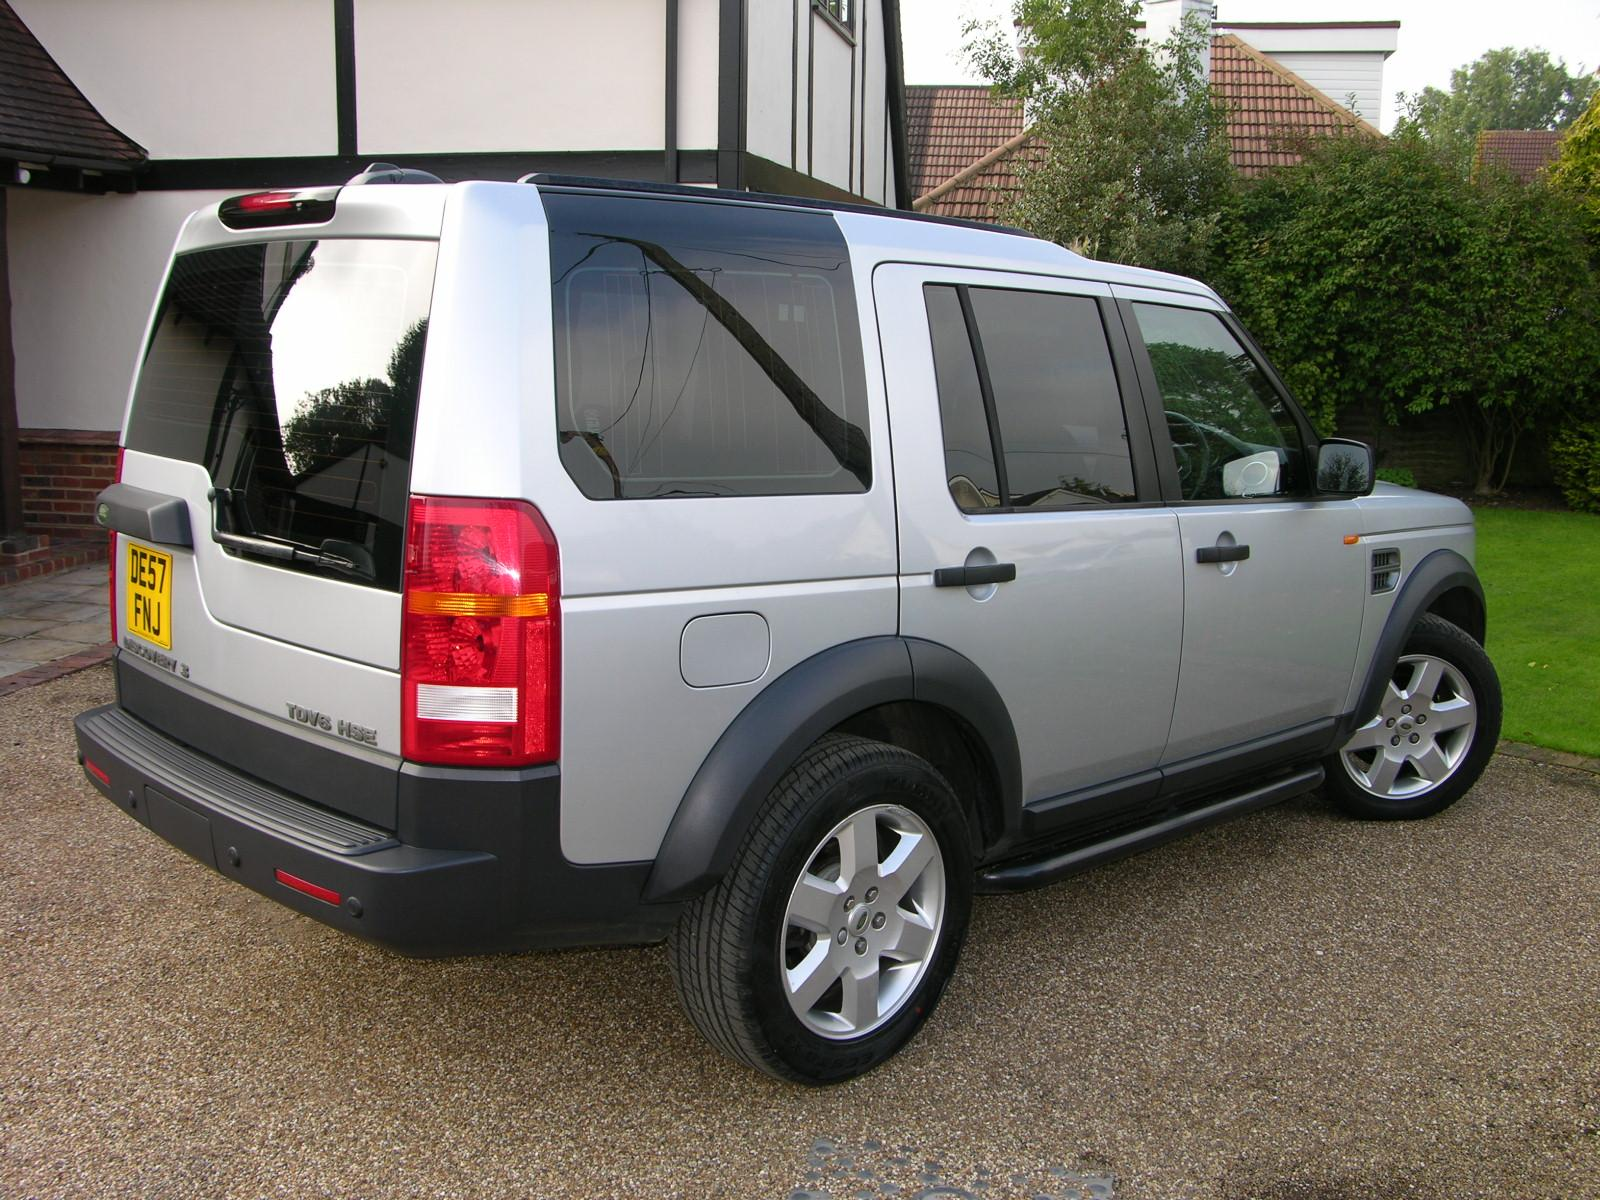 file land rover discovery 3 tdv6 hse flickr the car spy 11 jpg. Black Bedroom Furniture Sets. Home Design Ideas